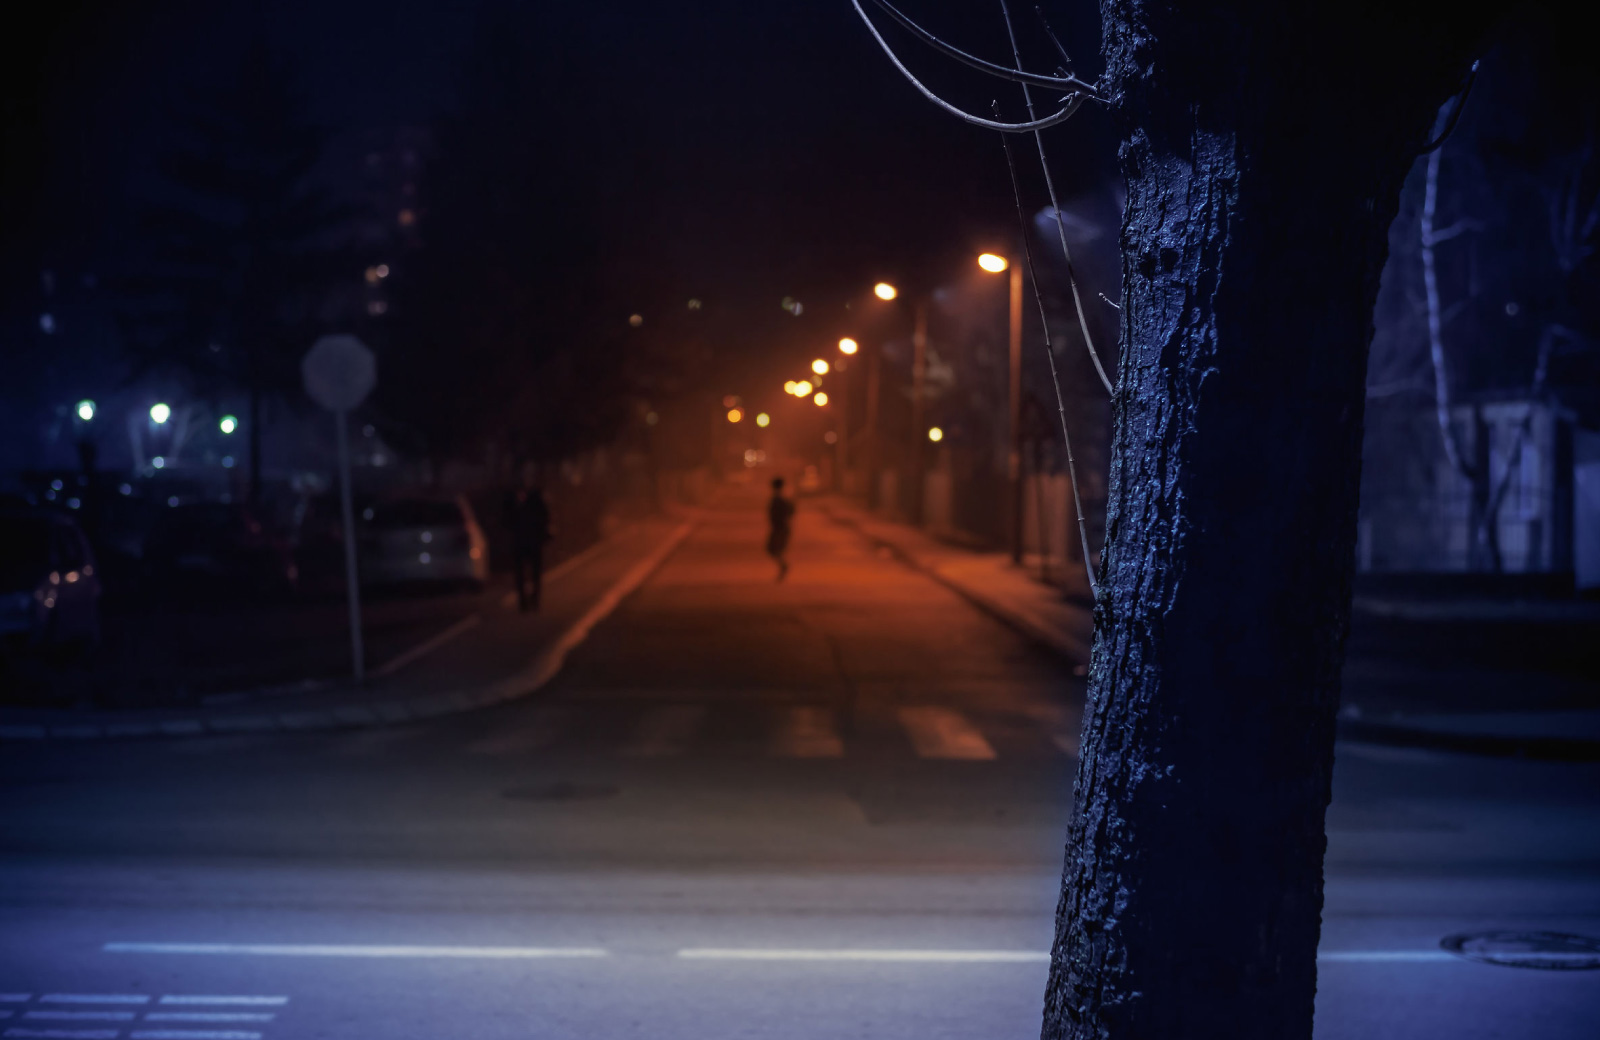 man crossing in a dark street